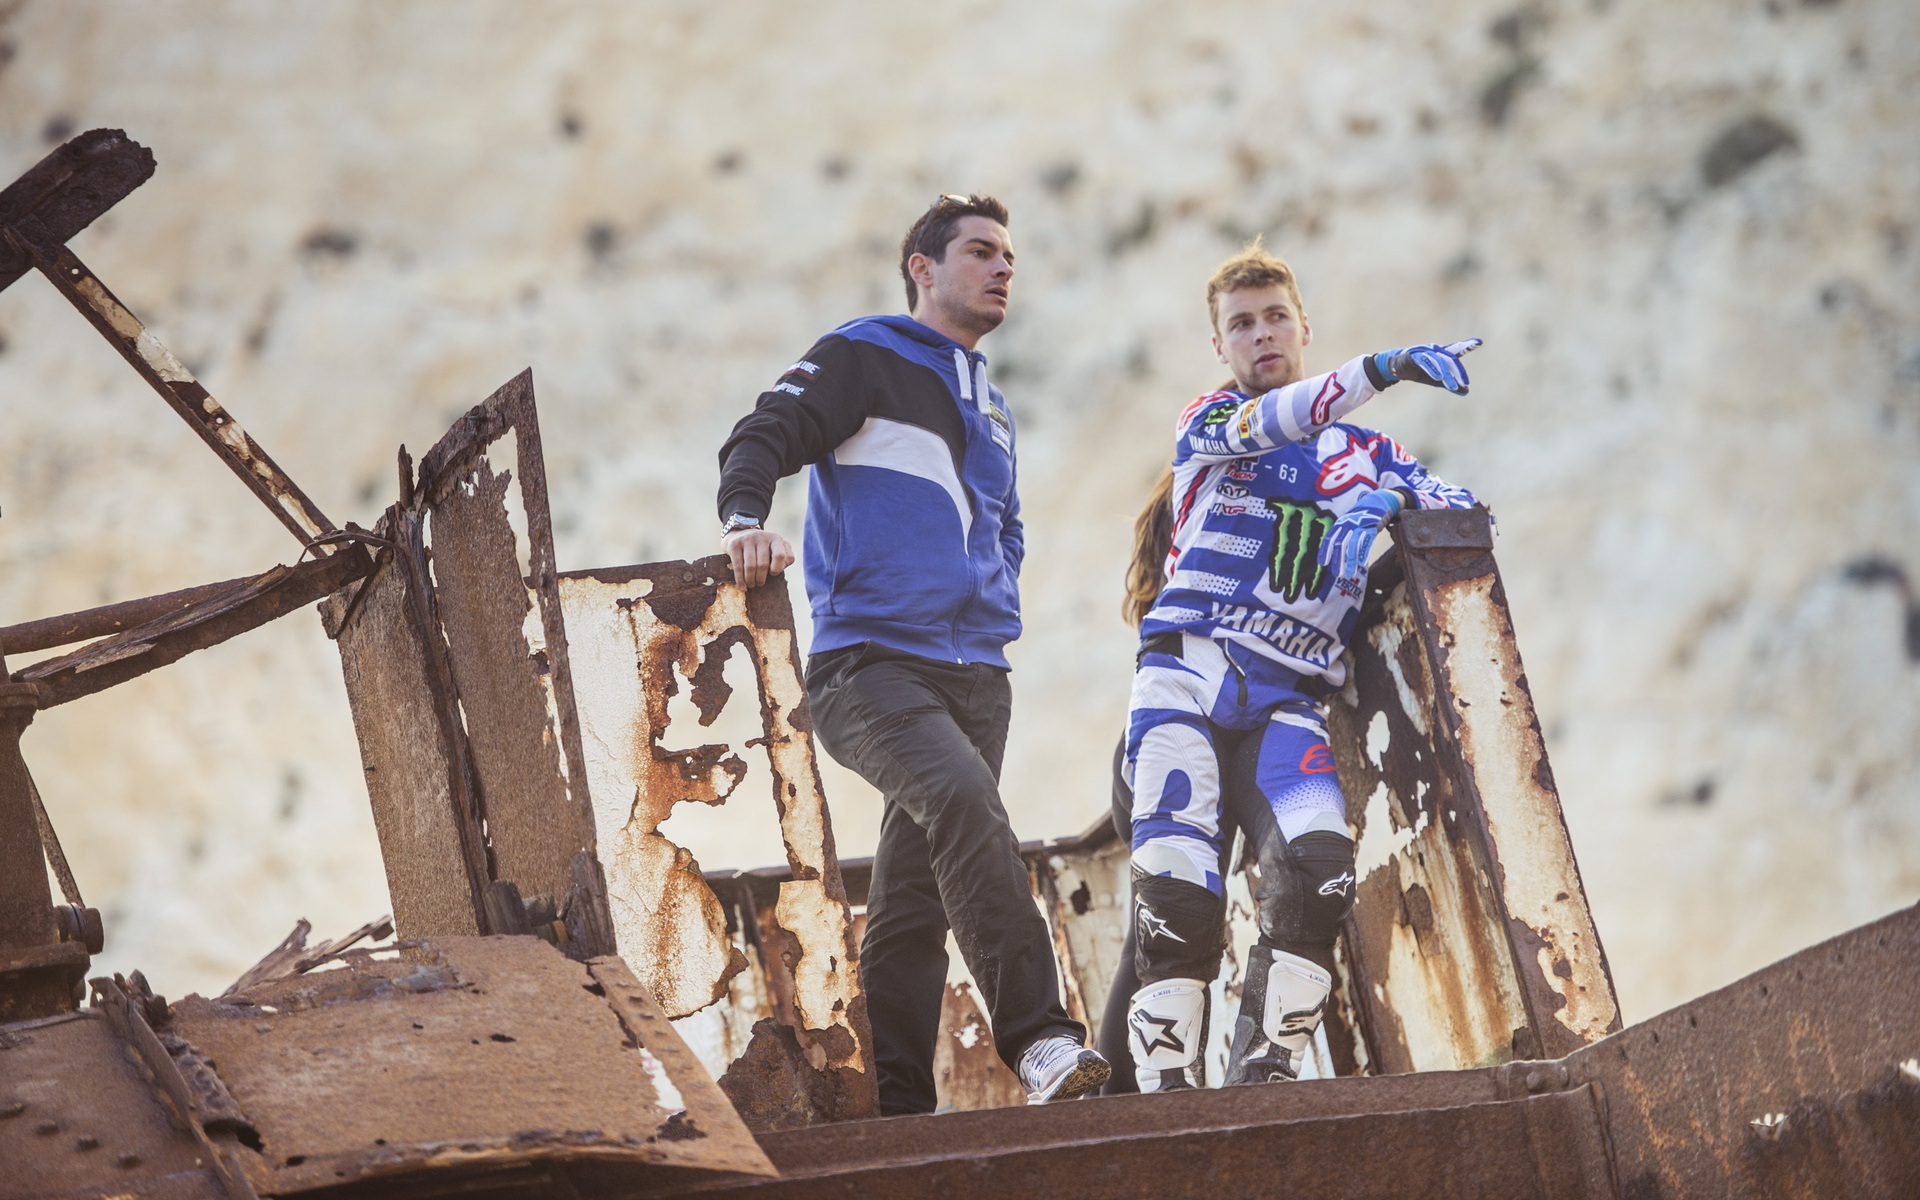 Romain_Febvre_Monster_Energy_Shipwreck_0036